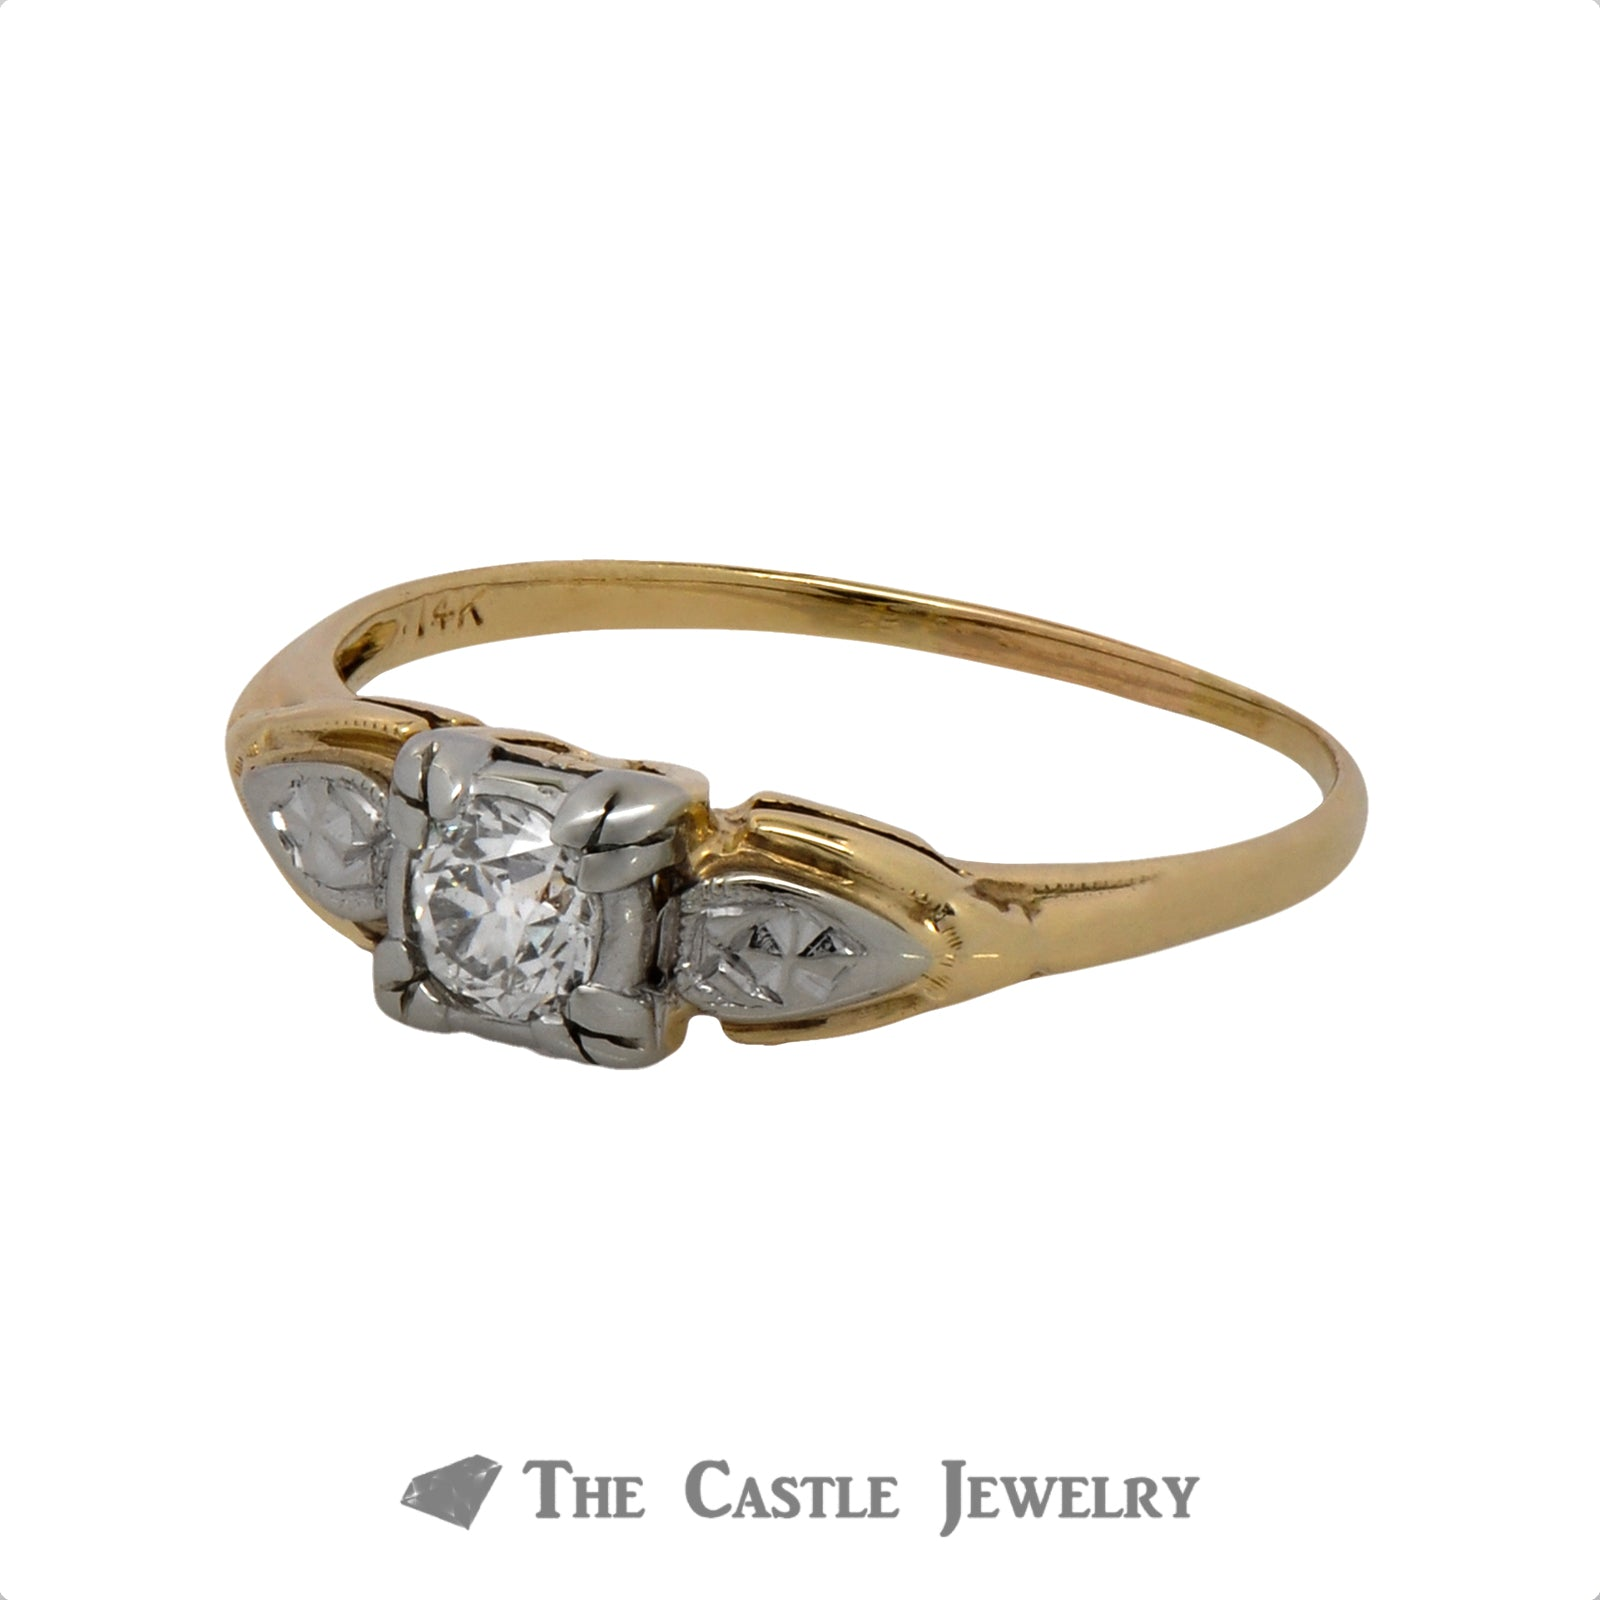 .30ct Old European Cut Diamond Solitaire Engagement Ring in 14k Two-Tone Gold-2